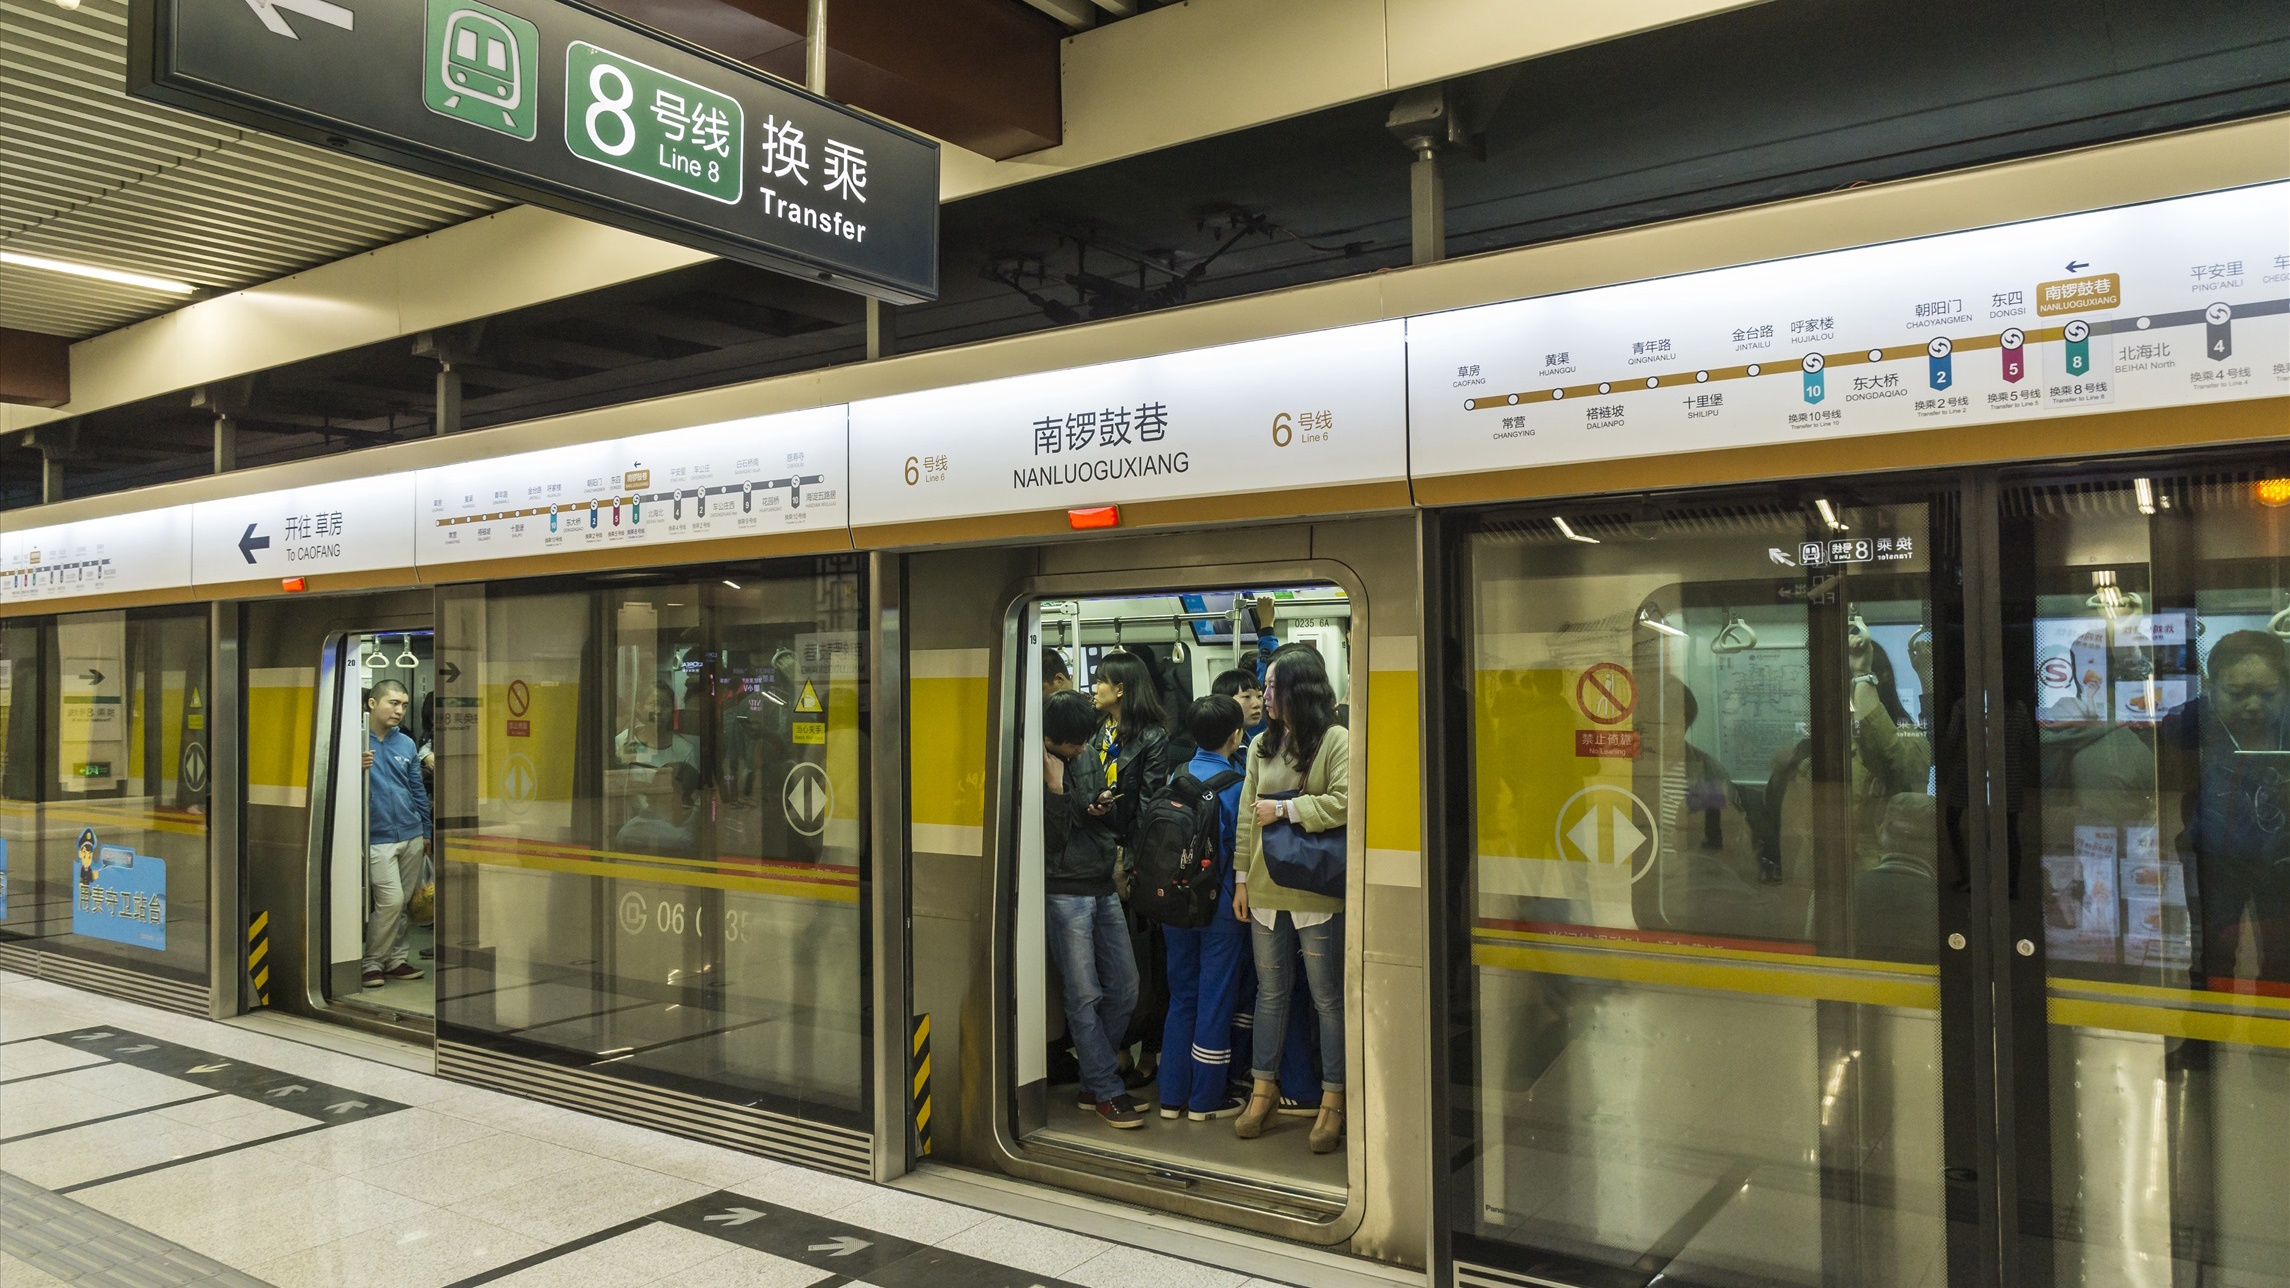 Beijing subway to ease Spring Festival travel rush with new measures